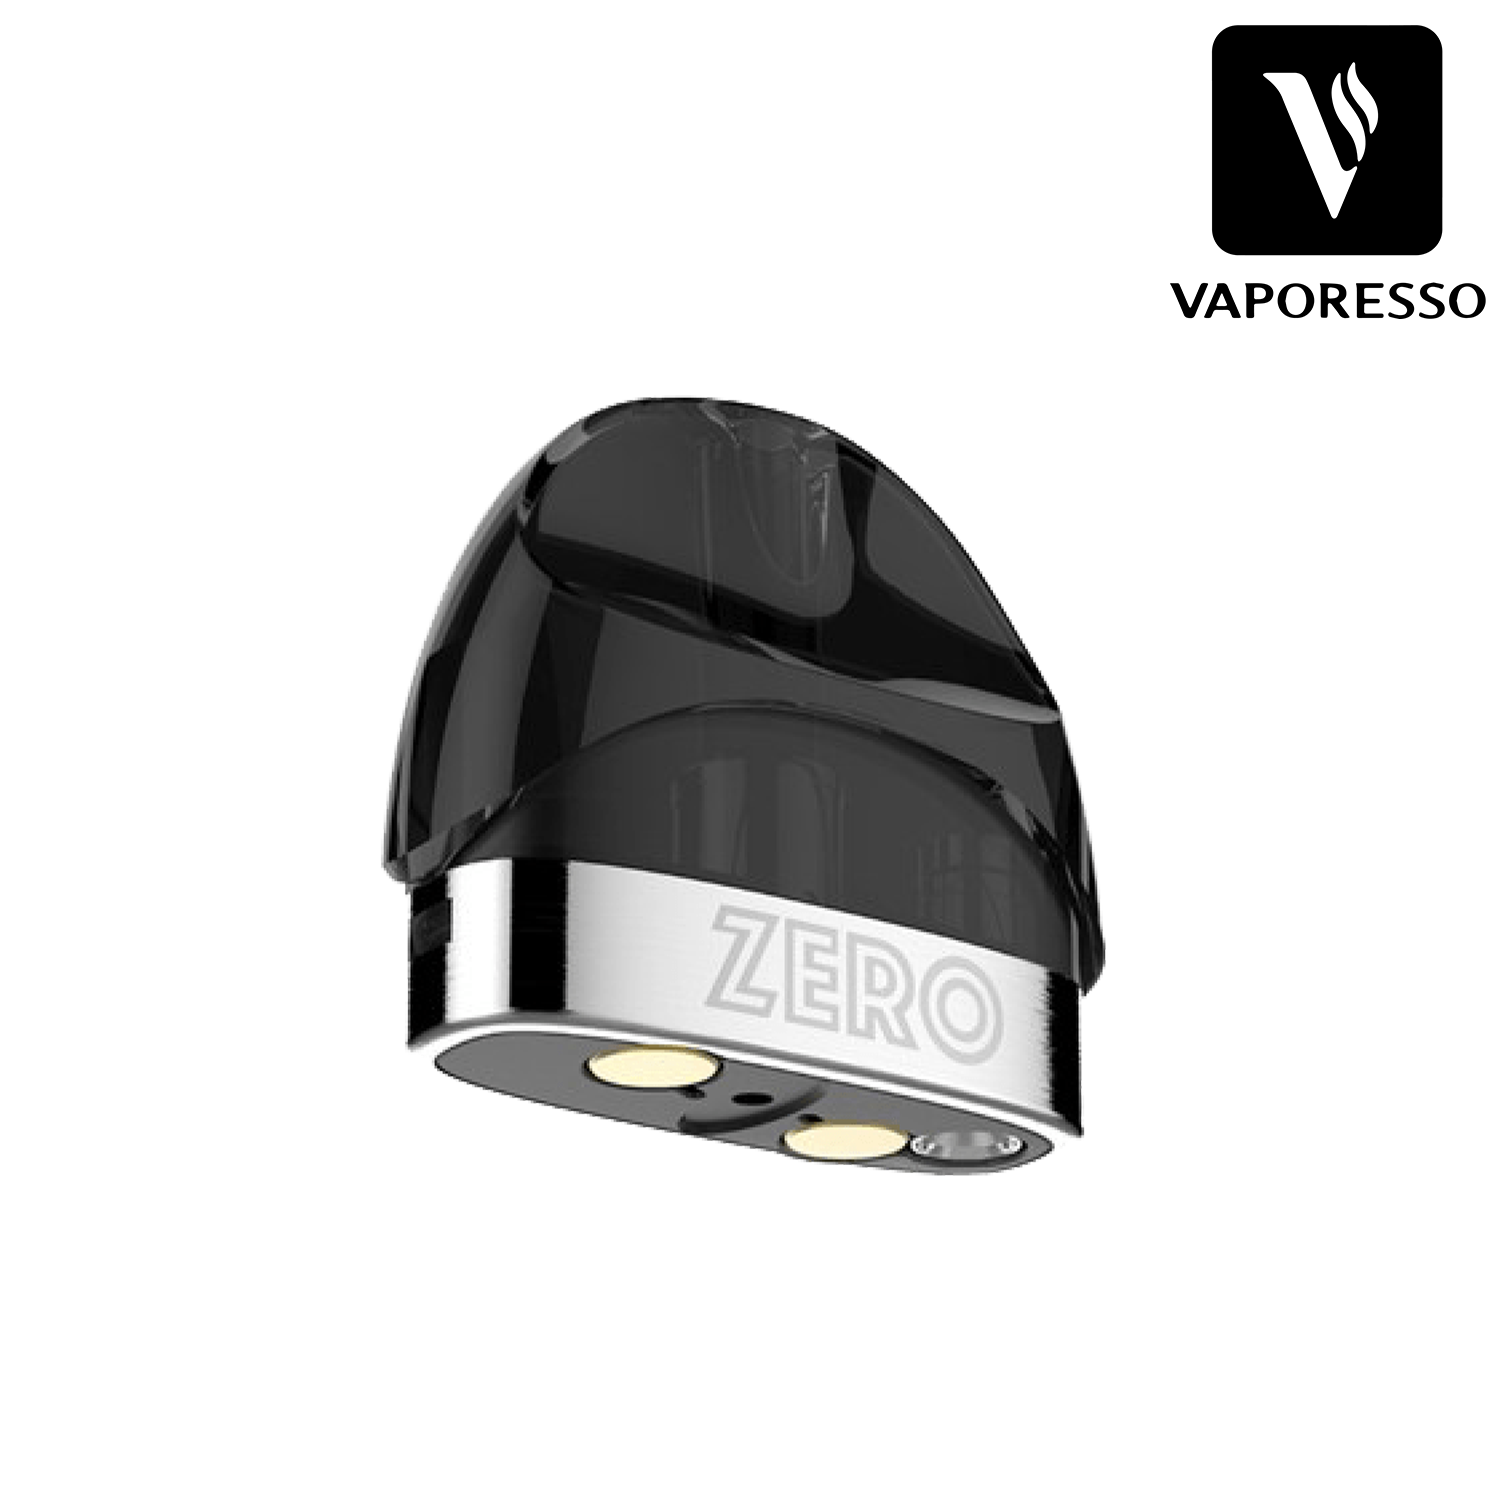 VAPORESSO RENOVA ZERO REPLACEMENT PODS (Price Per POD)